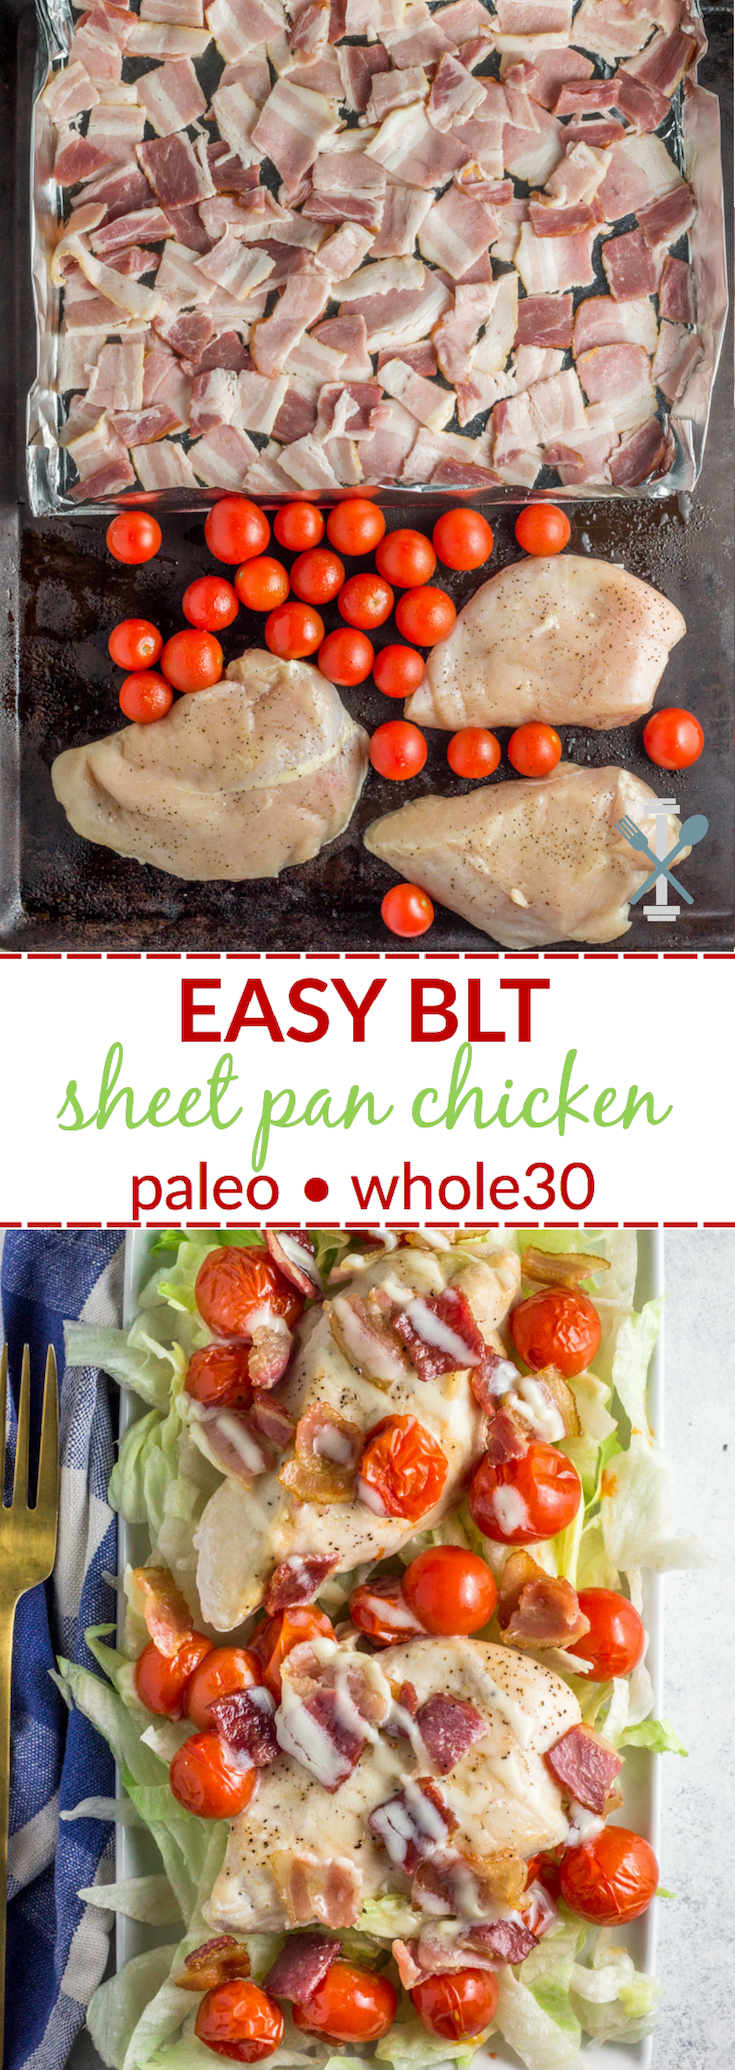 This paleo and Whole30 compliant sheet pan chicken is SO easy and you won't even miss the bread. A delicious dinner in 30 minutes or less